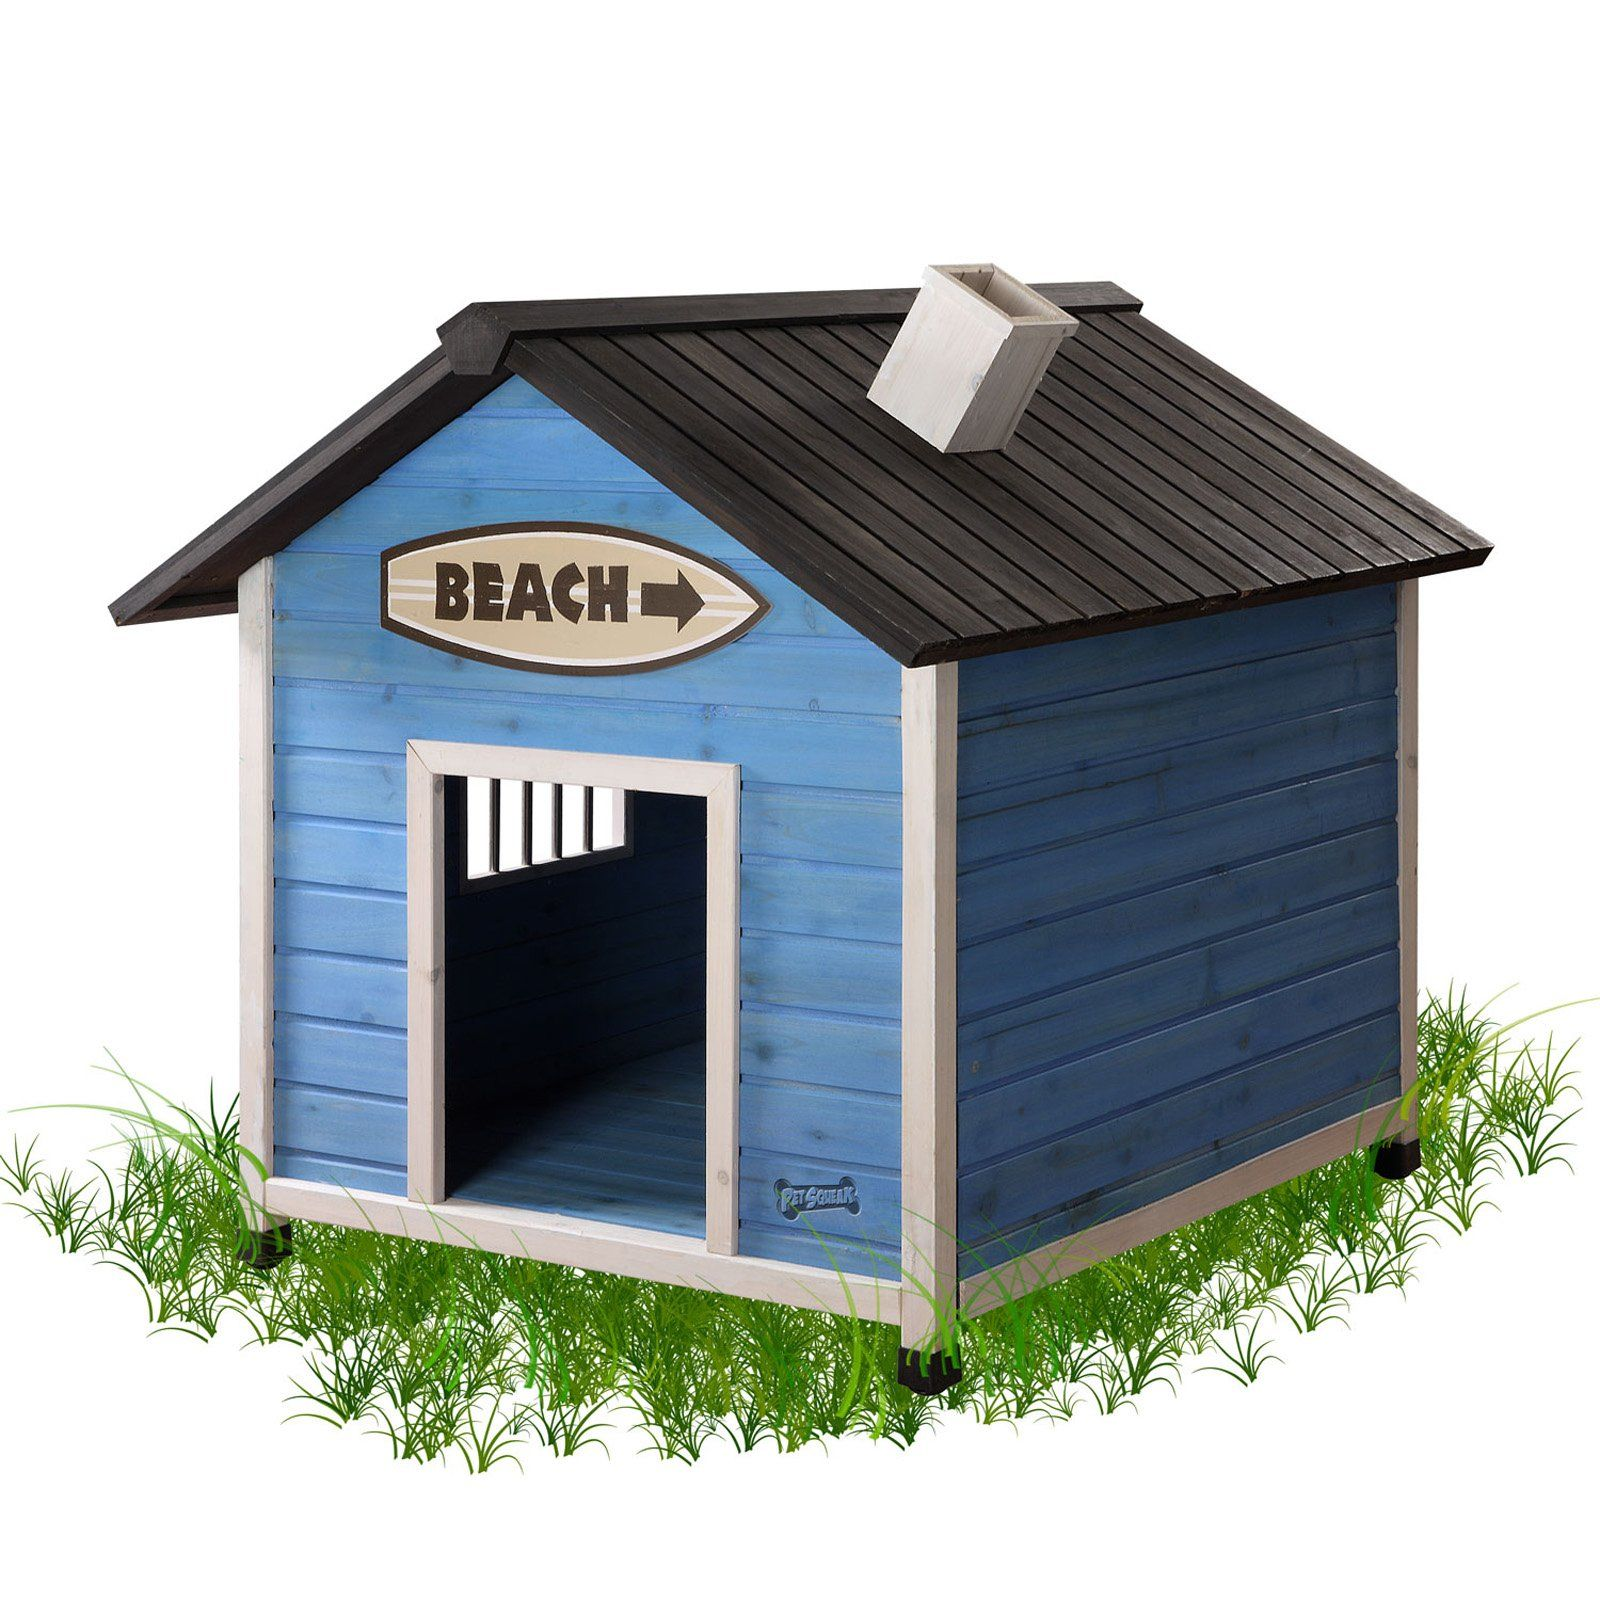 This Beach House Dog House would be